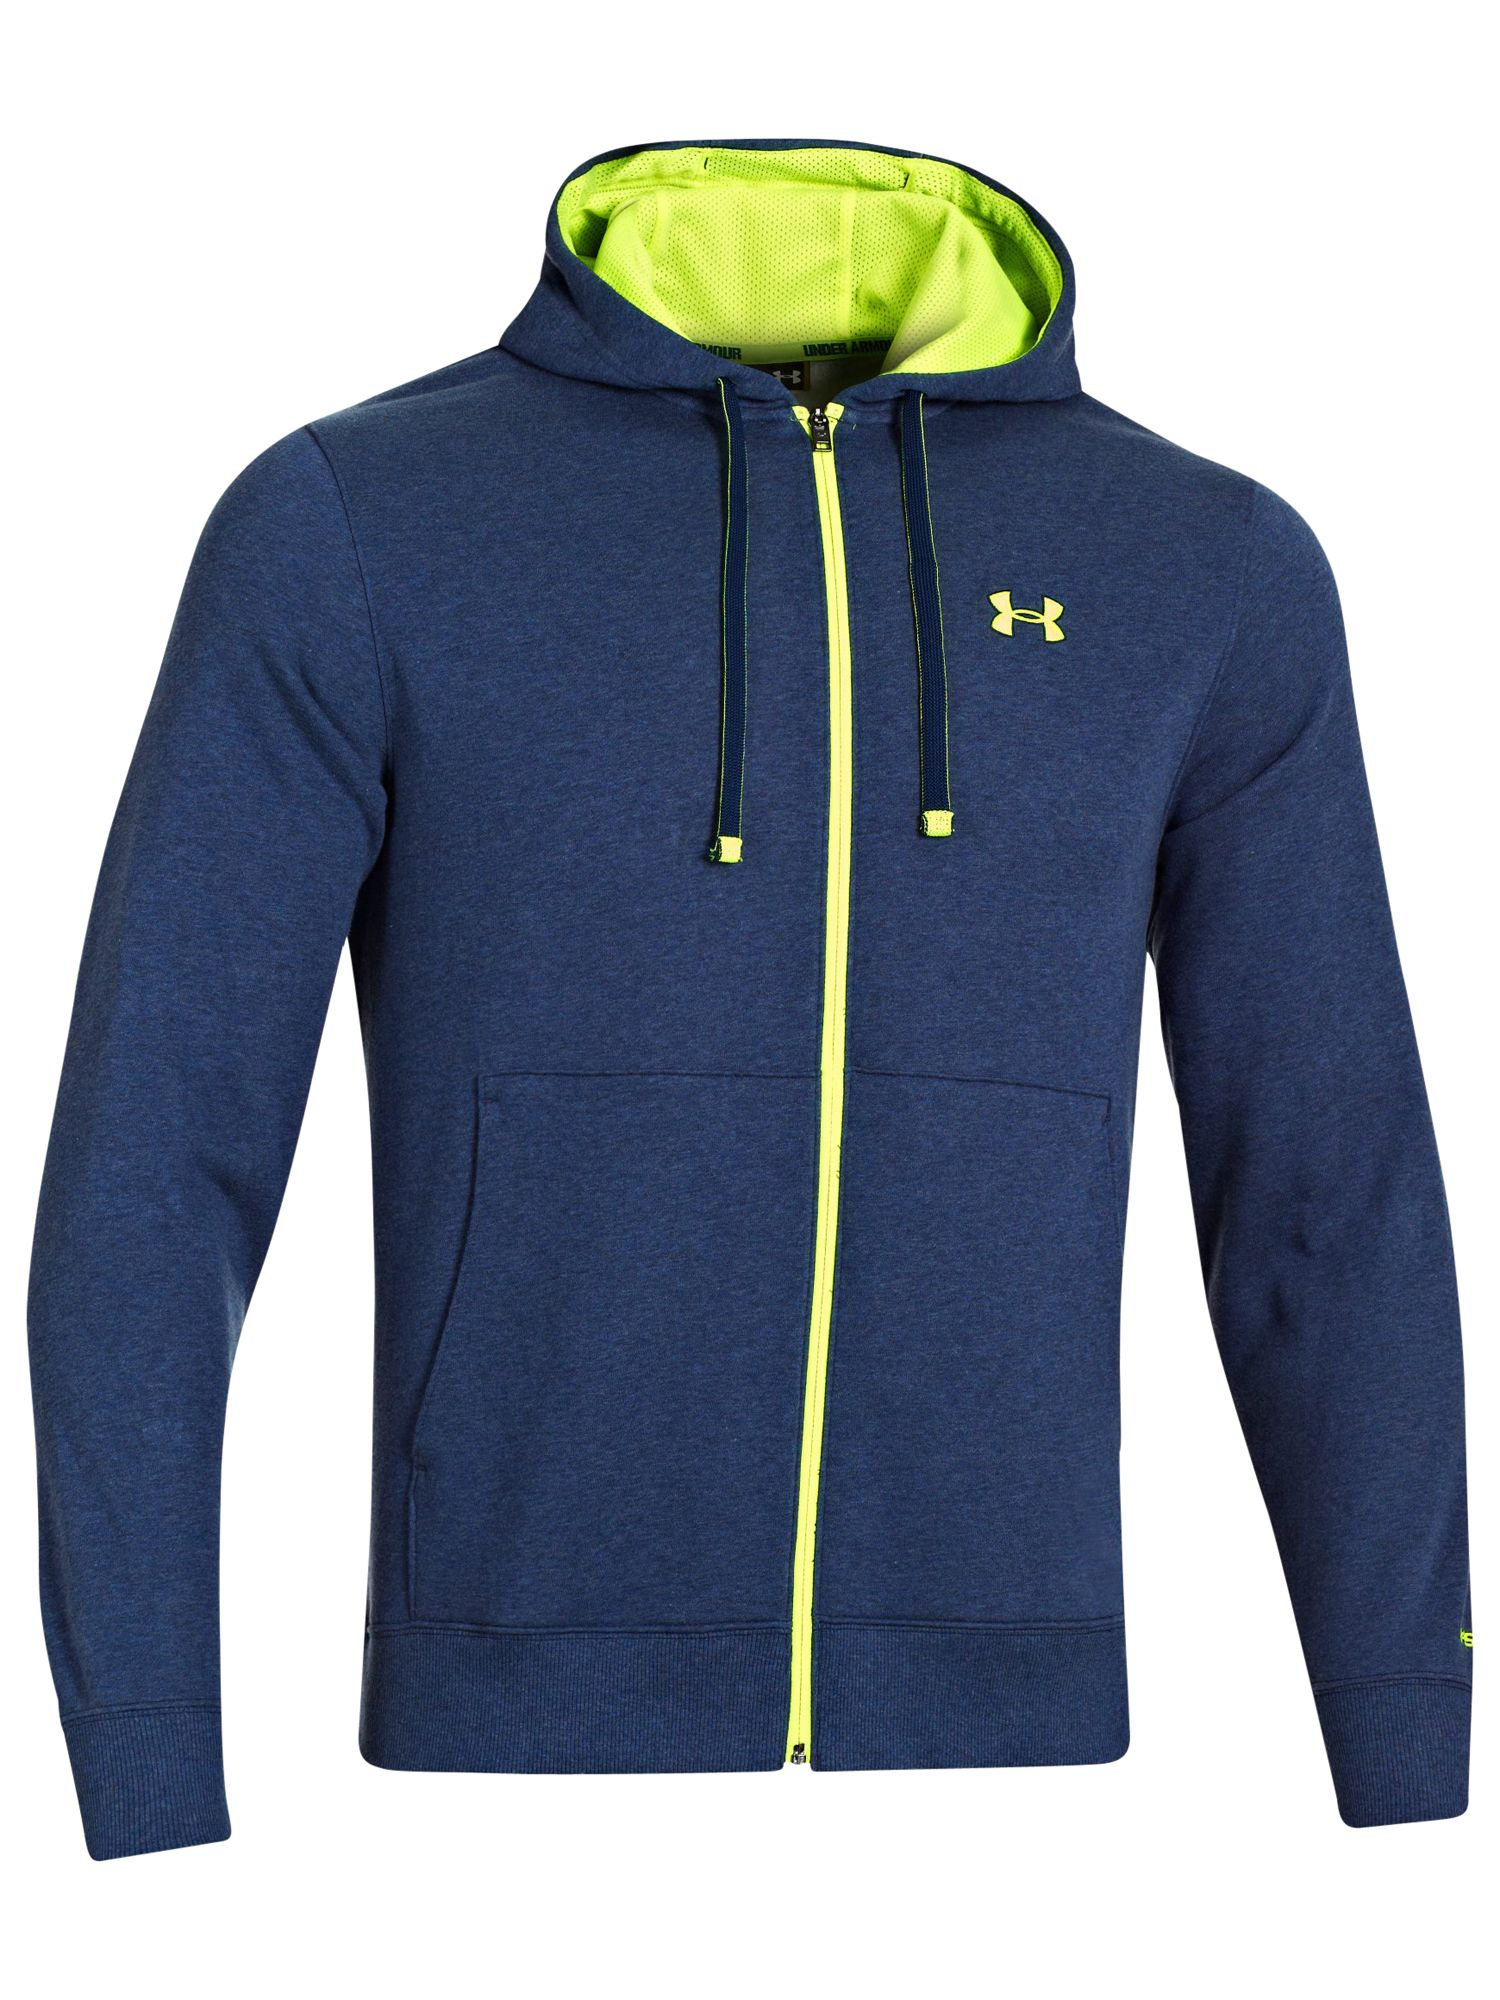 Men%27s sports clothing